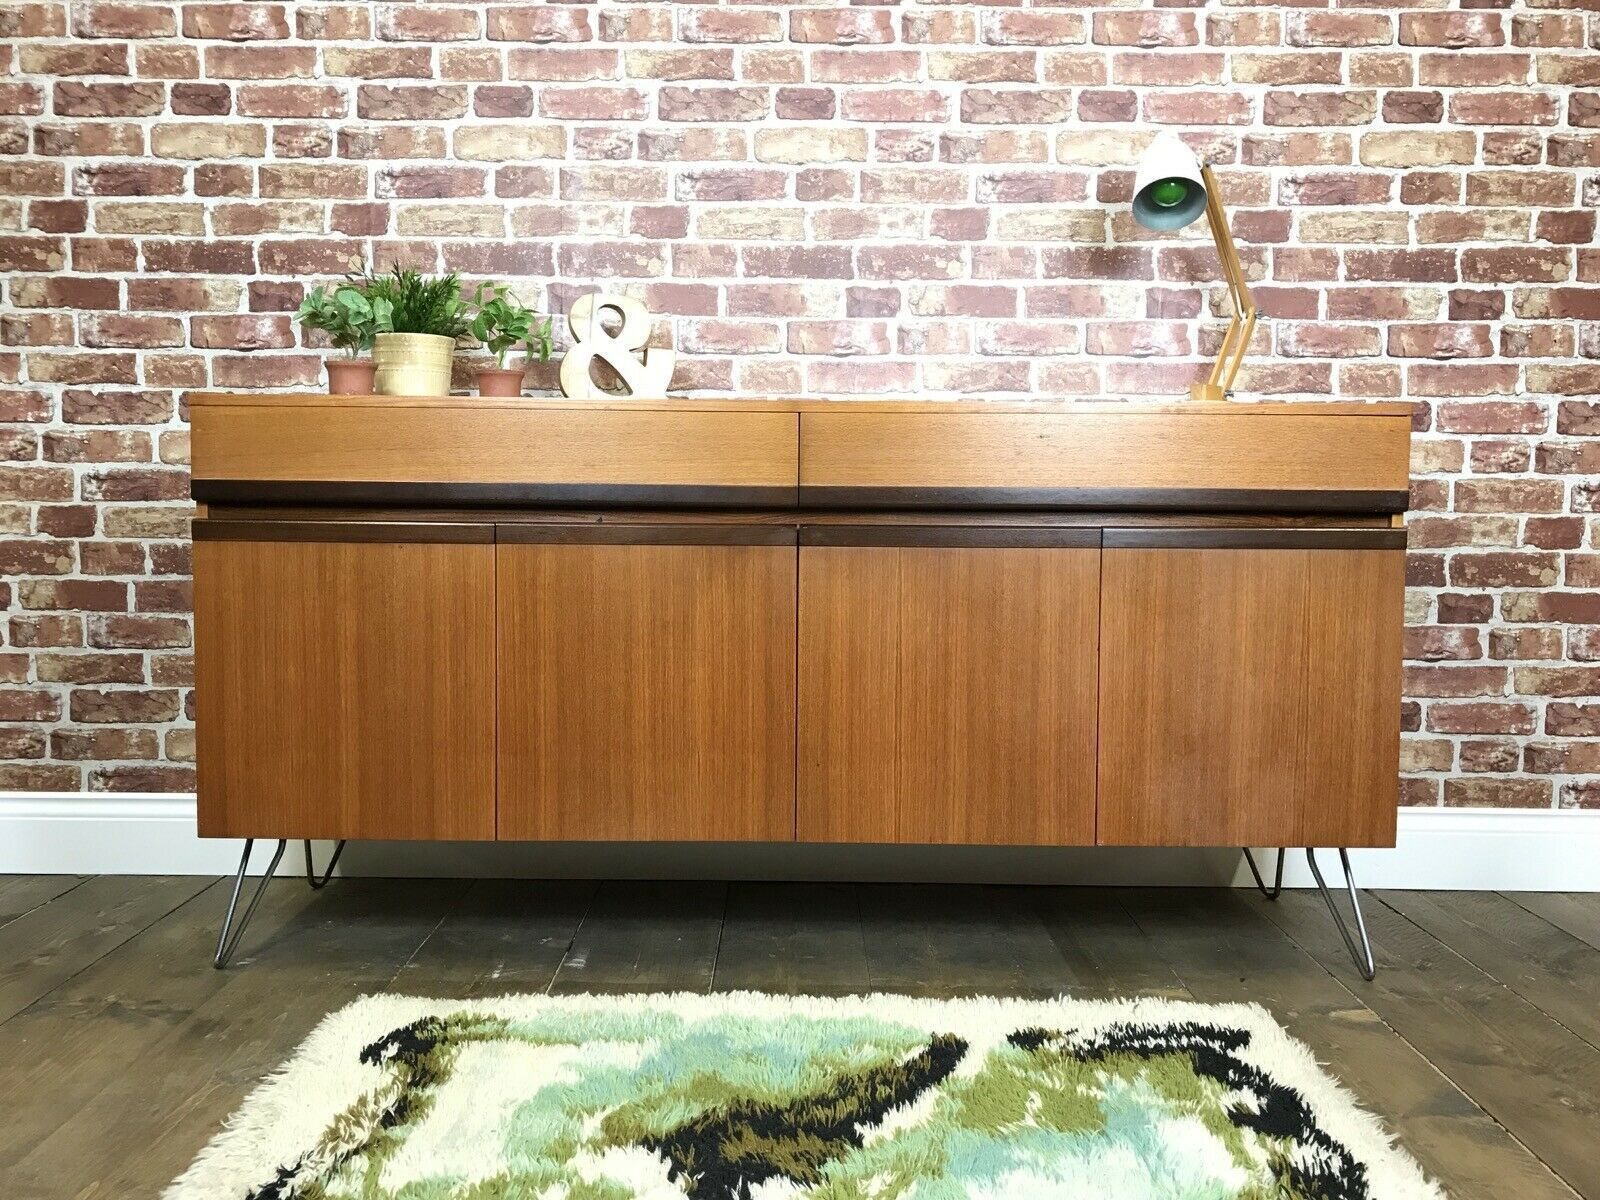 Vintage Sideboard Hairpin Legs Stunning Retro G Plan Sideboard On Hairpin Legs Vintage Chest Of Drawers Tv Unit